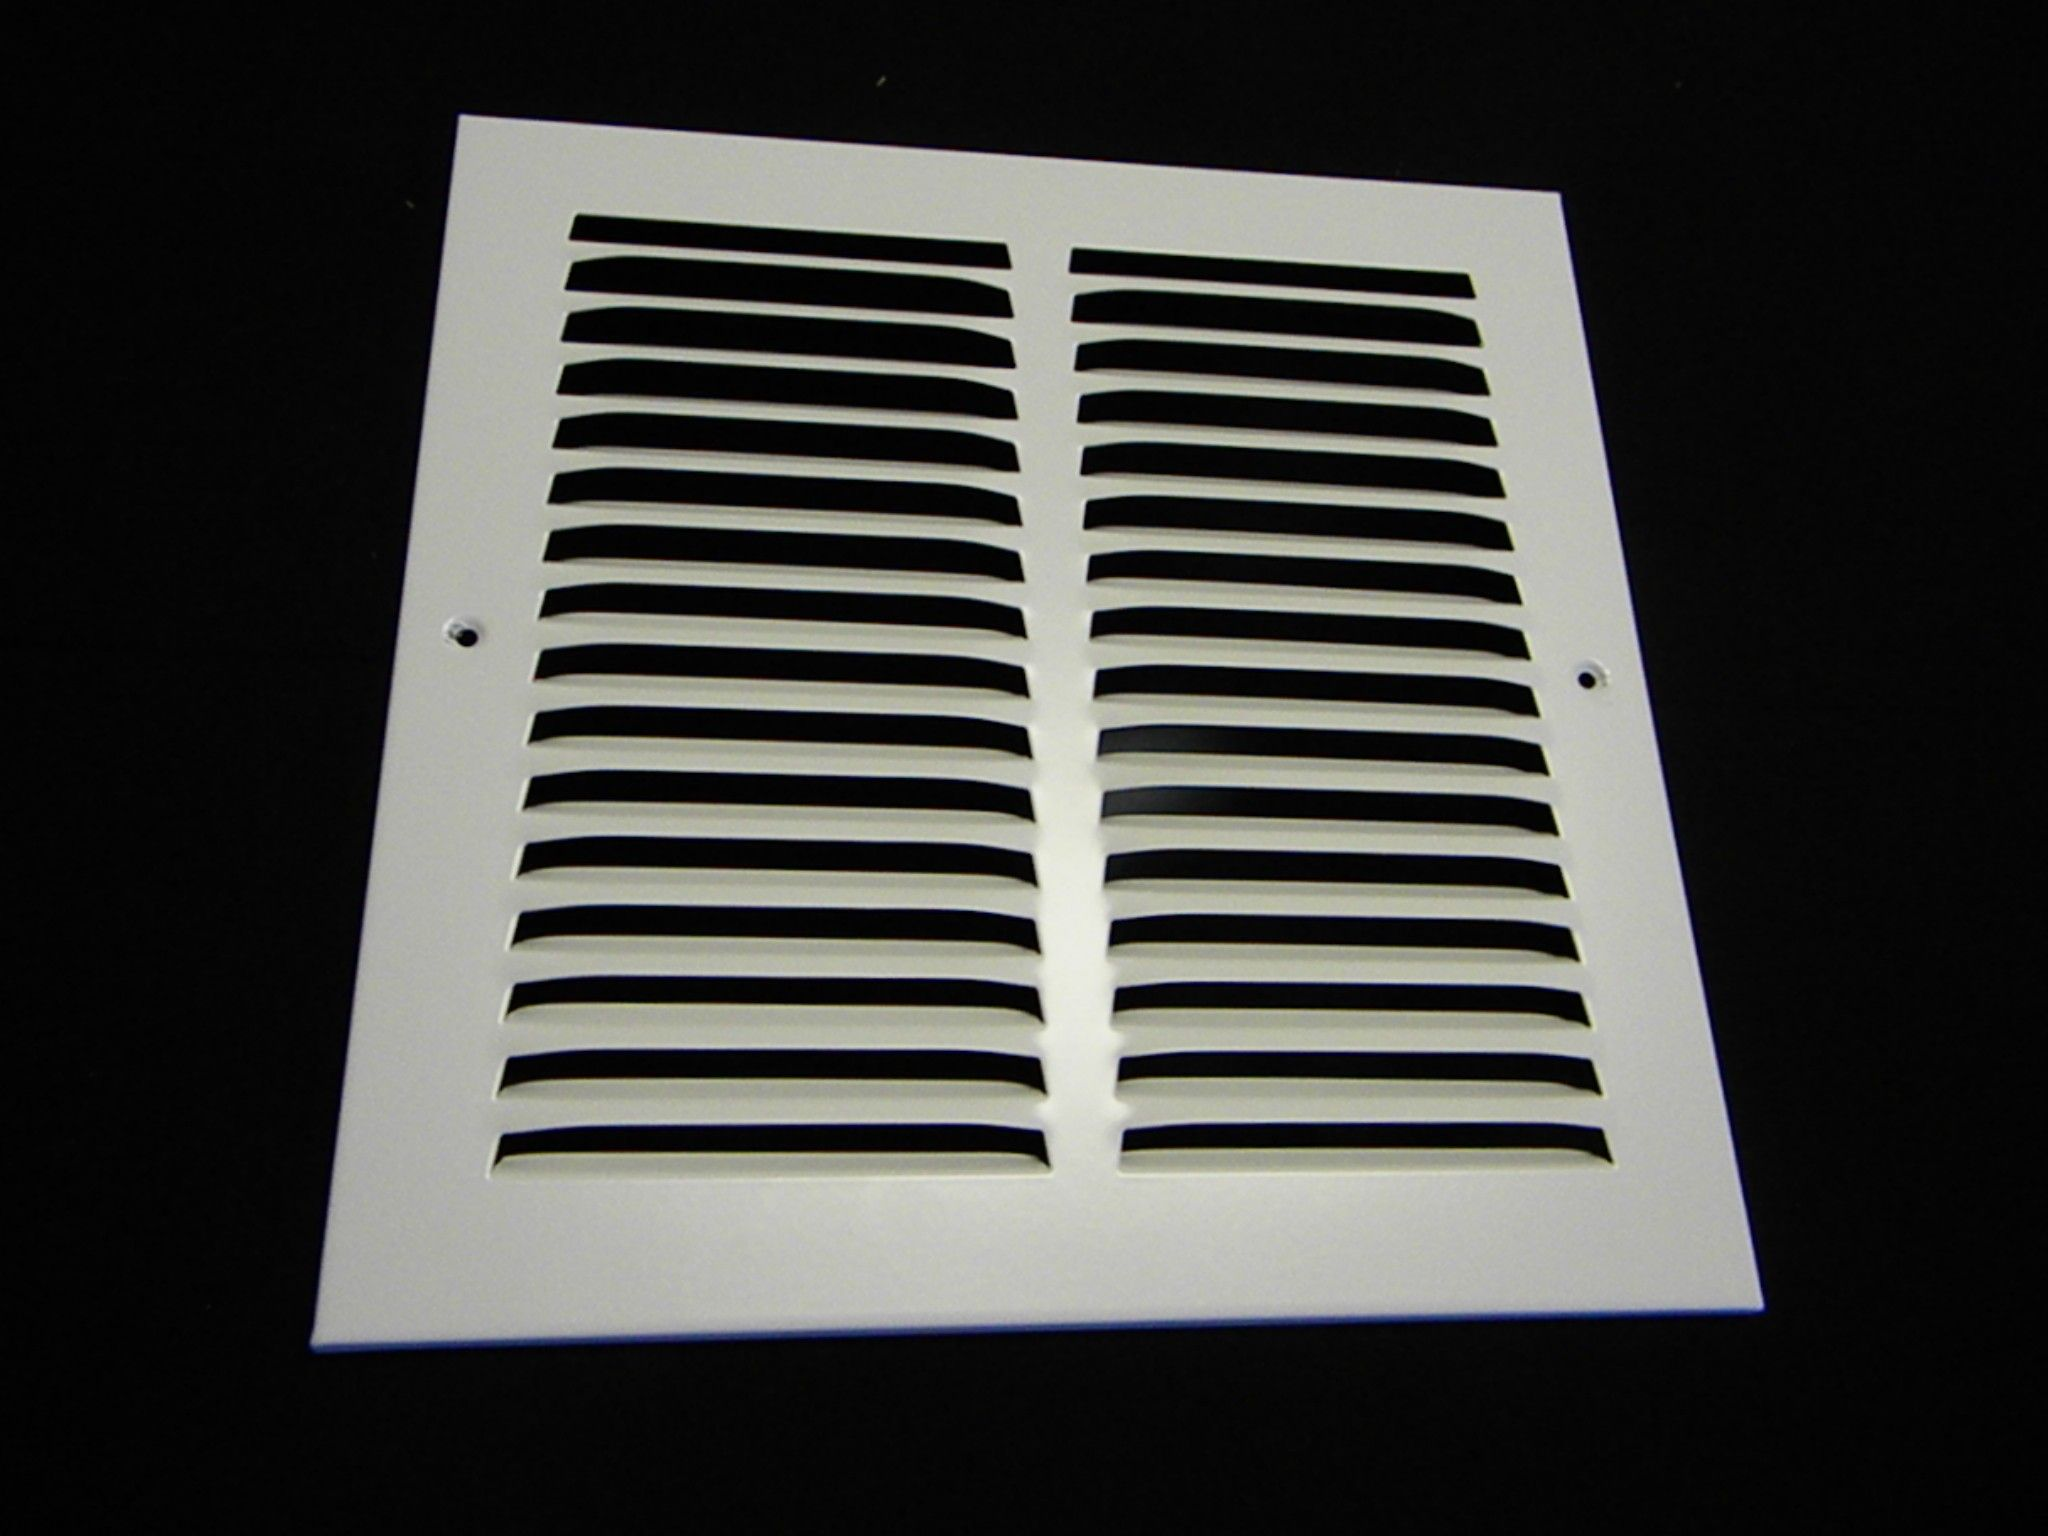 20x14 Return Stamped Grille